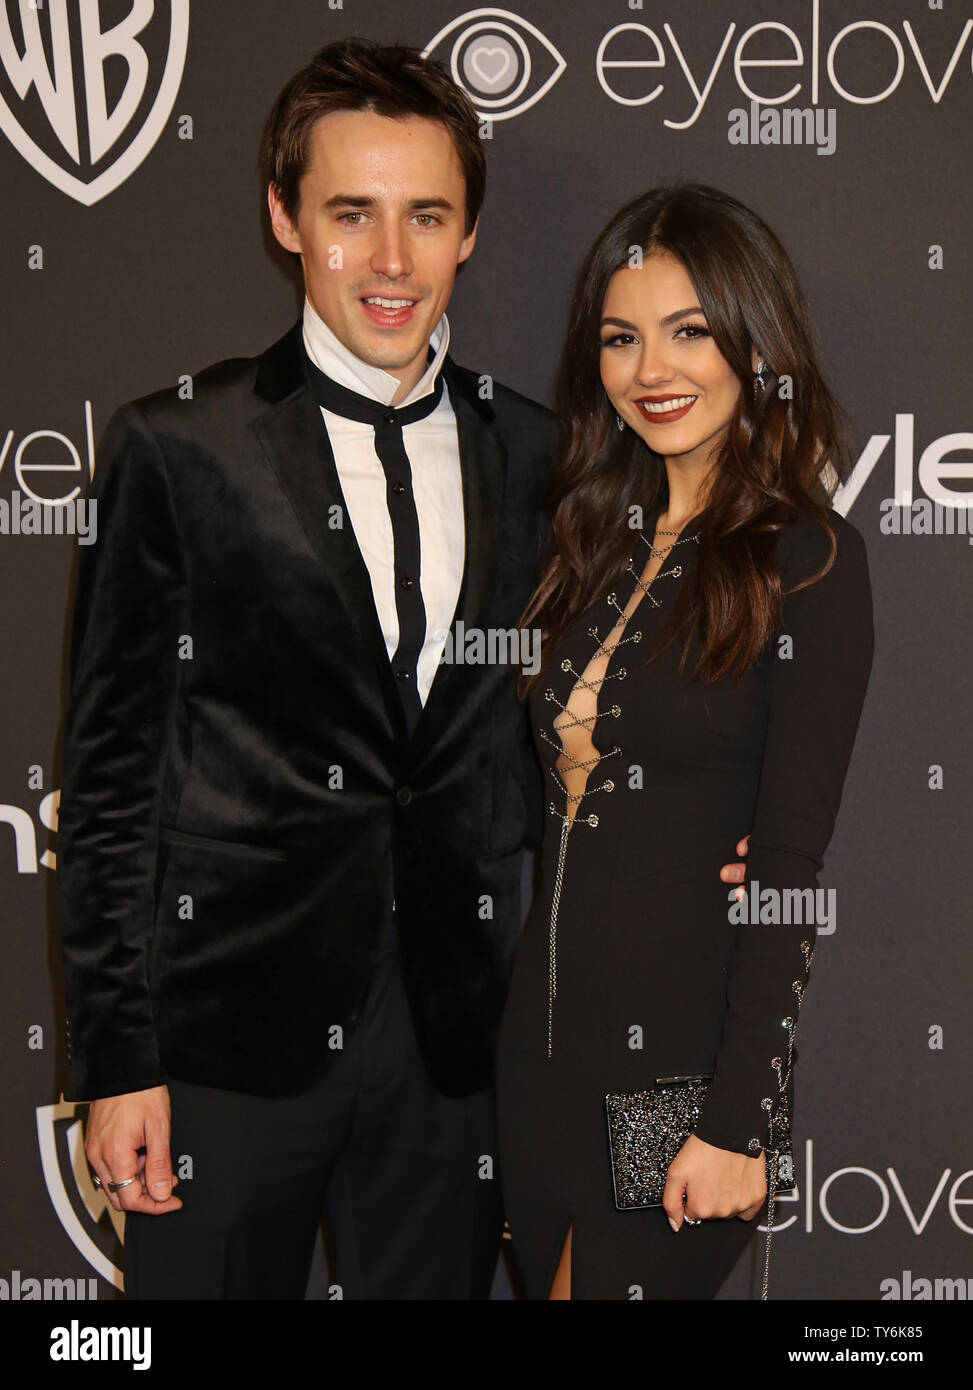 Reeve Carney (L) and Victoria Justice attend the 18th annual InStyle and Warner Bros. Golden Globe after-party at the Beverly Hilton Hotel in Beverly Hills, California on January 8, 2017.  Photo by David Silpa/UPI - Stock Image